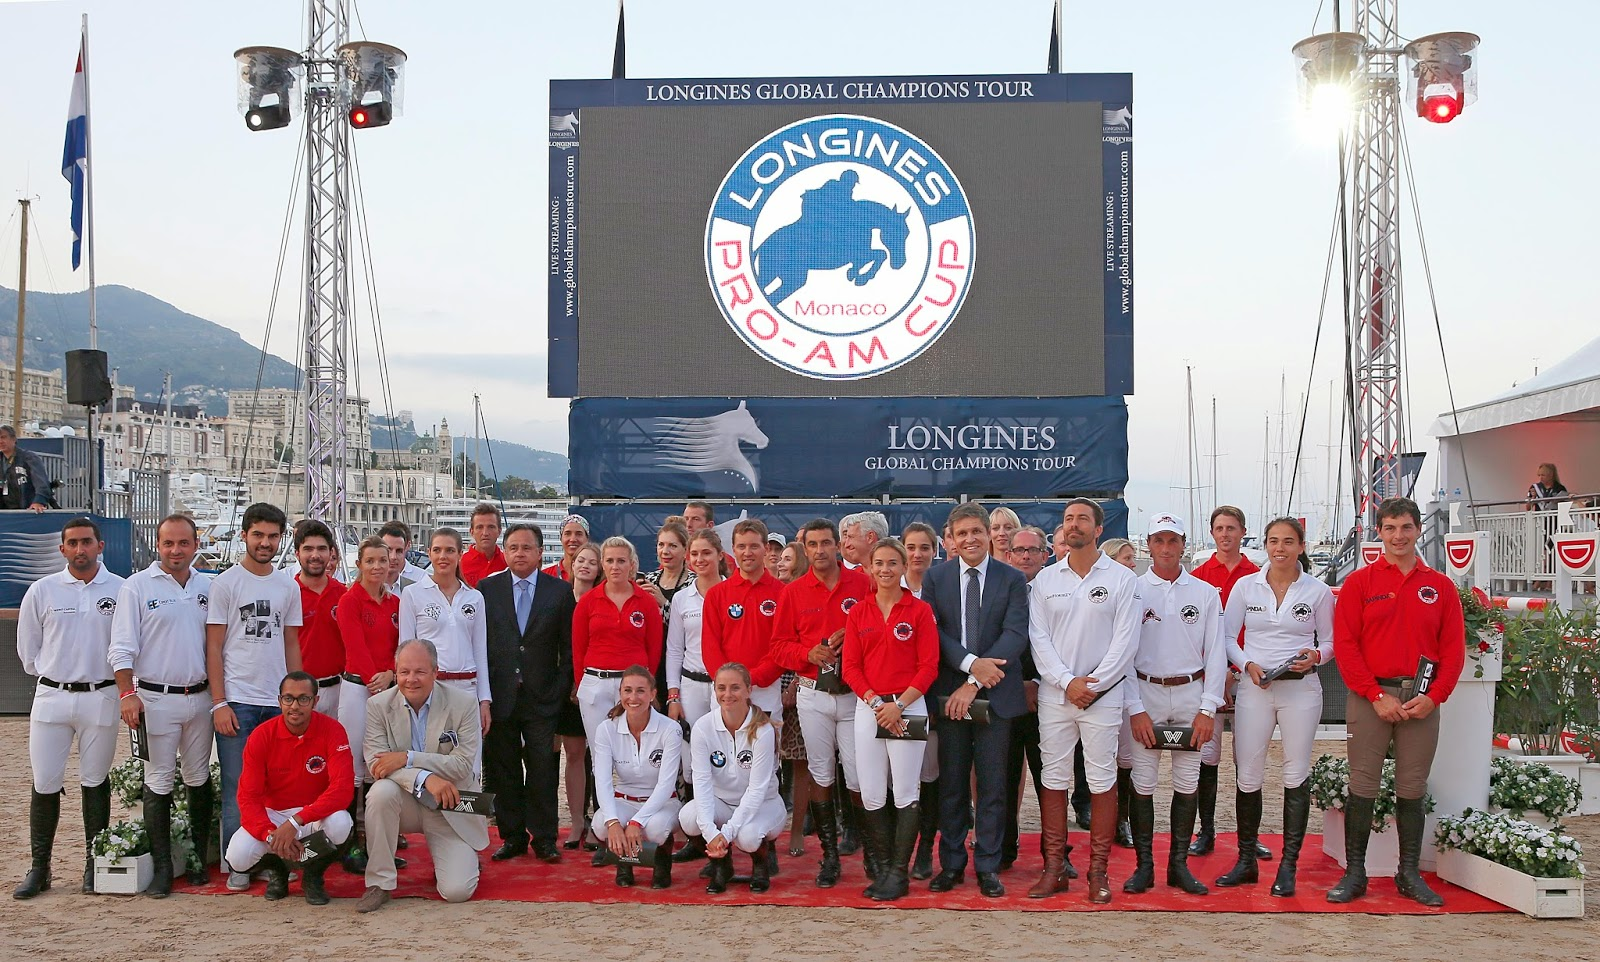 LONGINES Conquest, Global Champions Tour 2014 Montecarlo, Charlotte Casiraghi, Juan Carlos Capelli, pro-am cup, equitazione, show jumping, jane richard philips